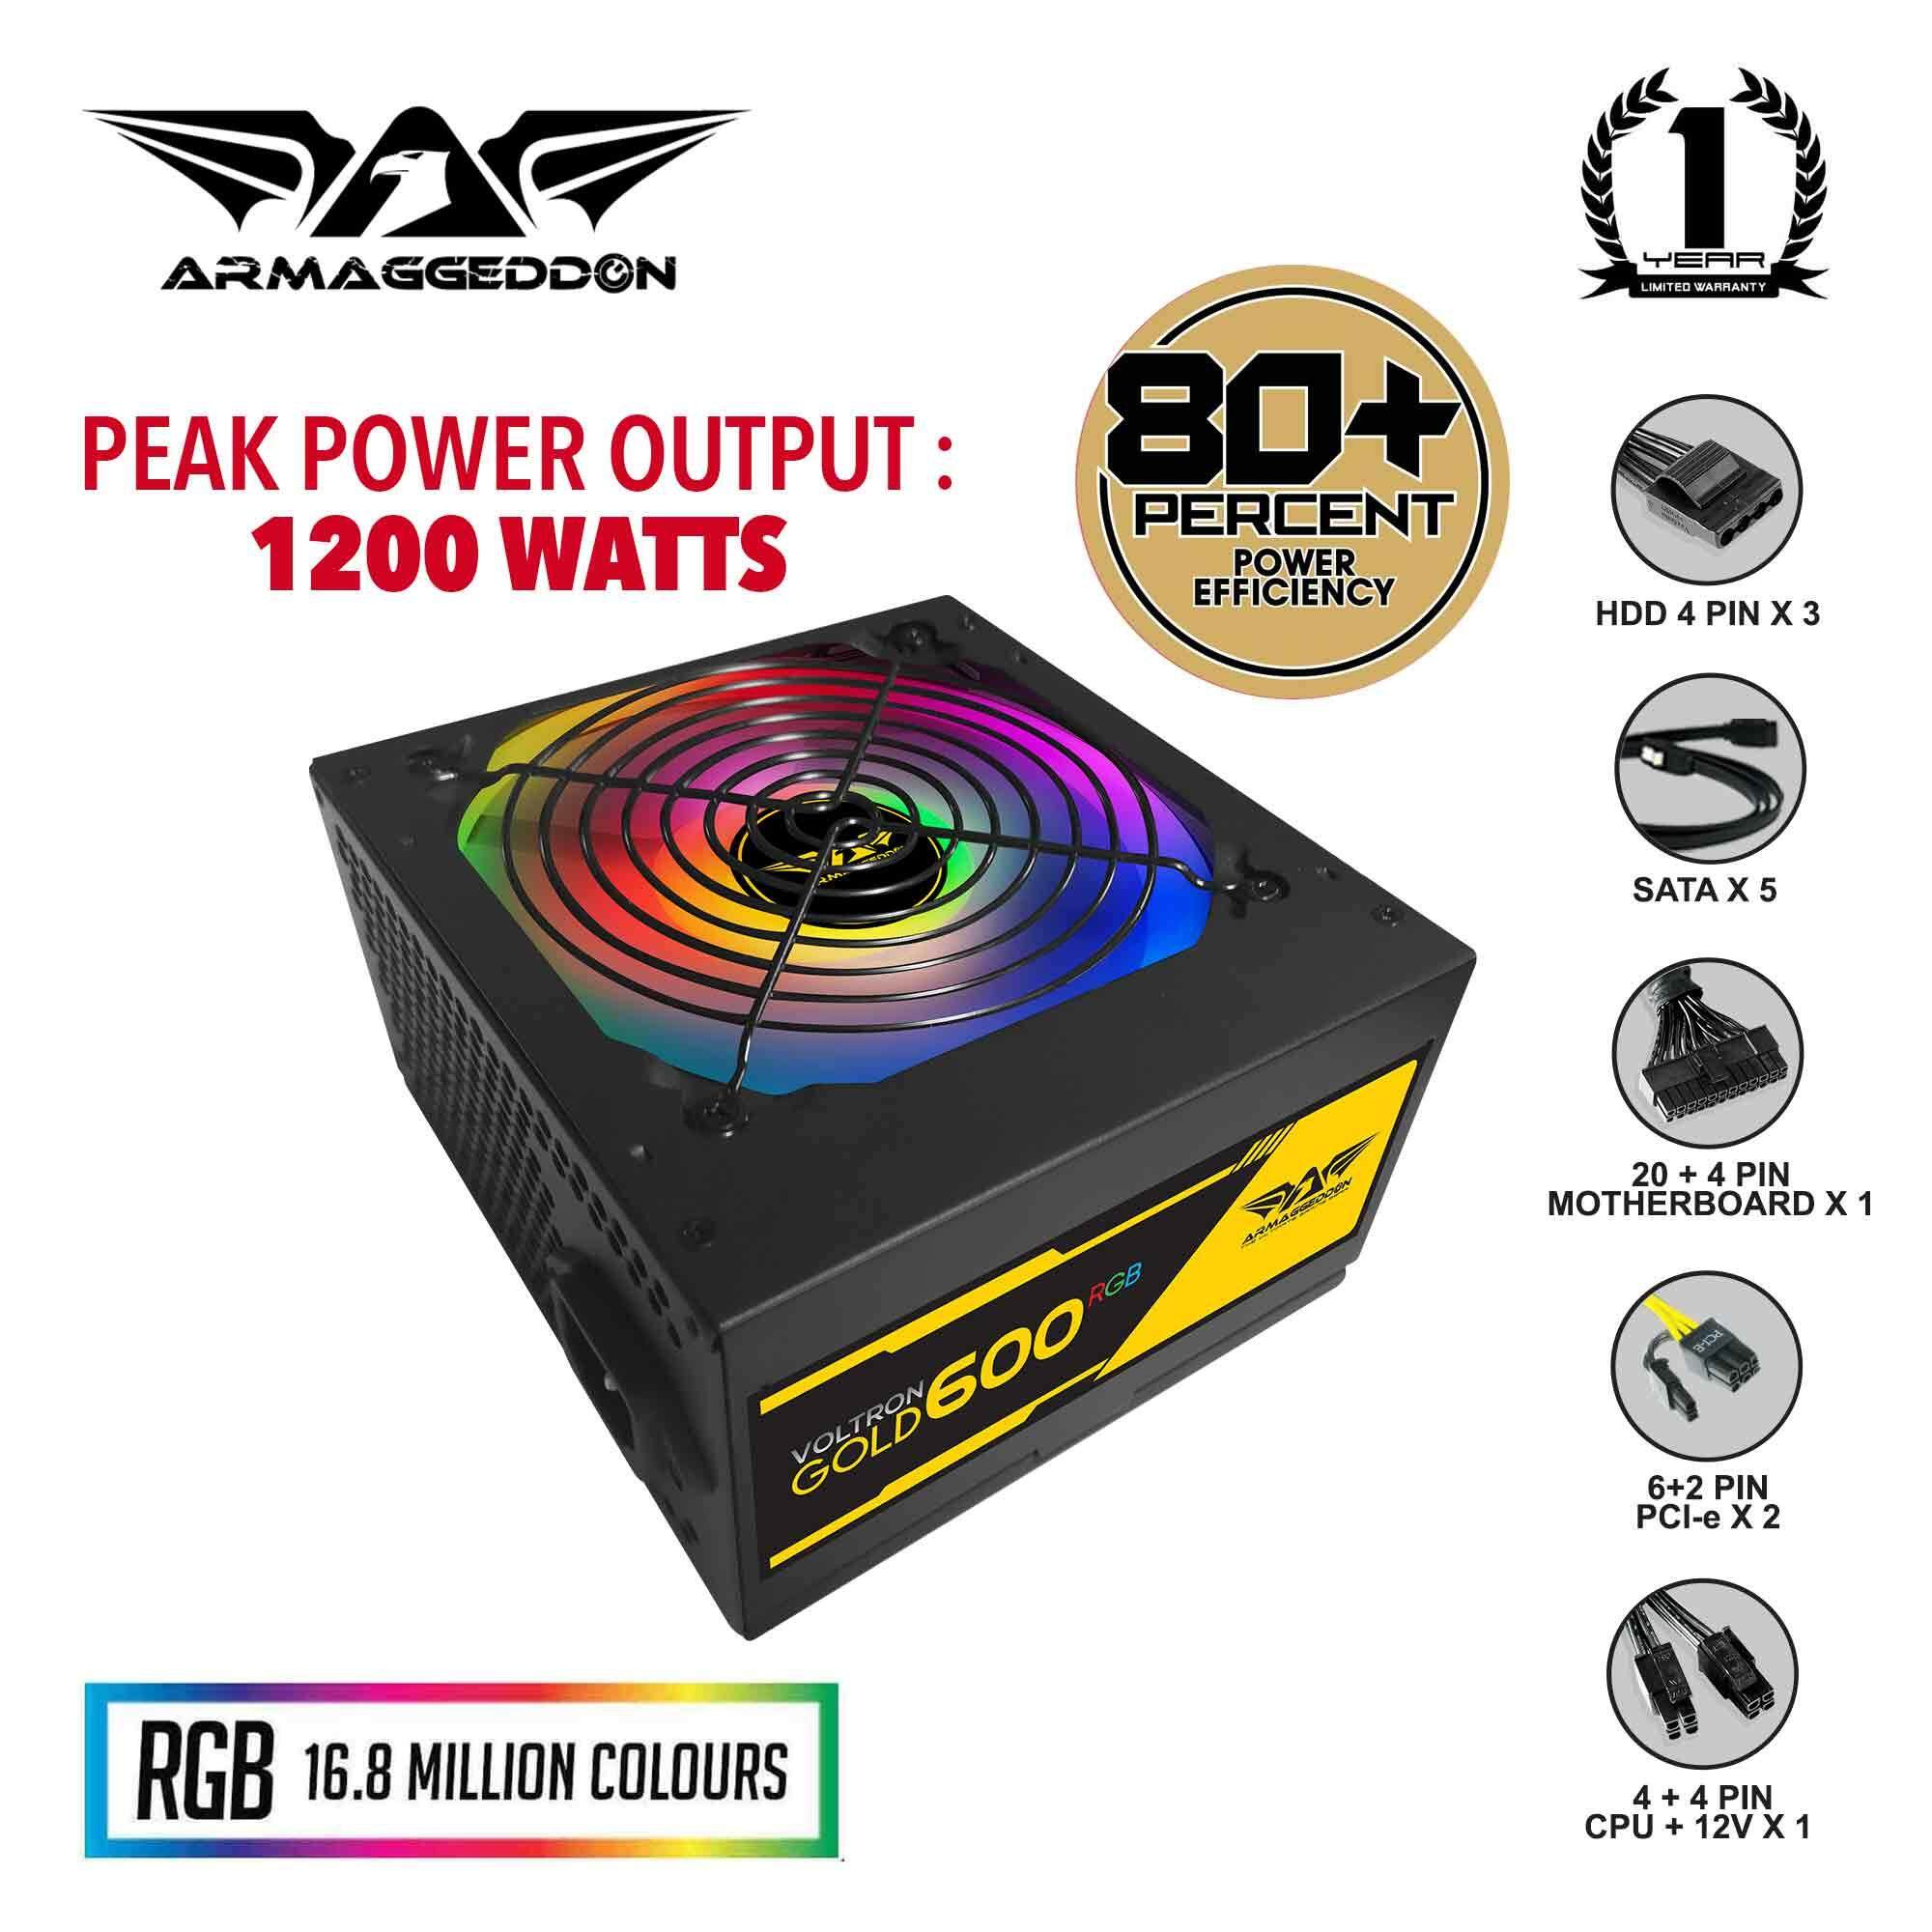 Armaggeddon Voltron Gold 600 RGB Power Supply Unit with 120mm RGB Silent  Fan (Pure Power Rated 600 Watts)